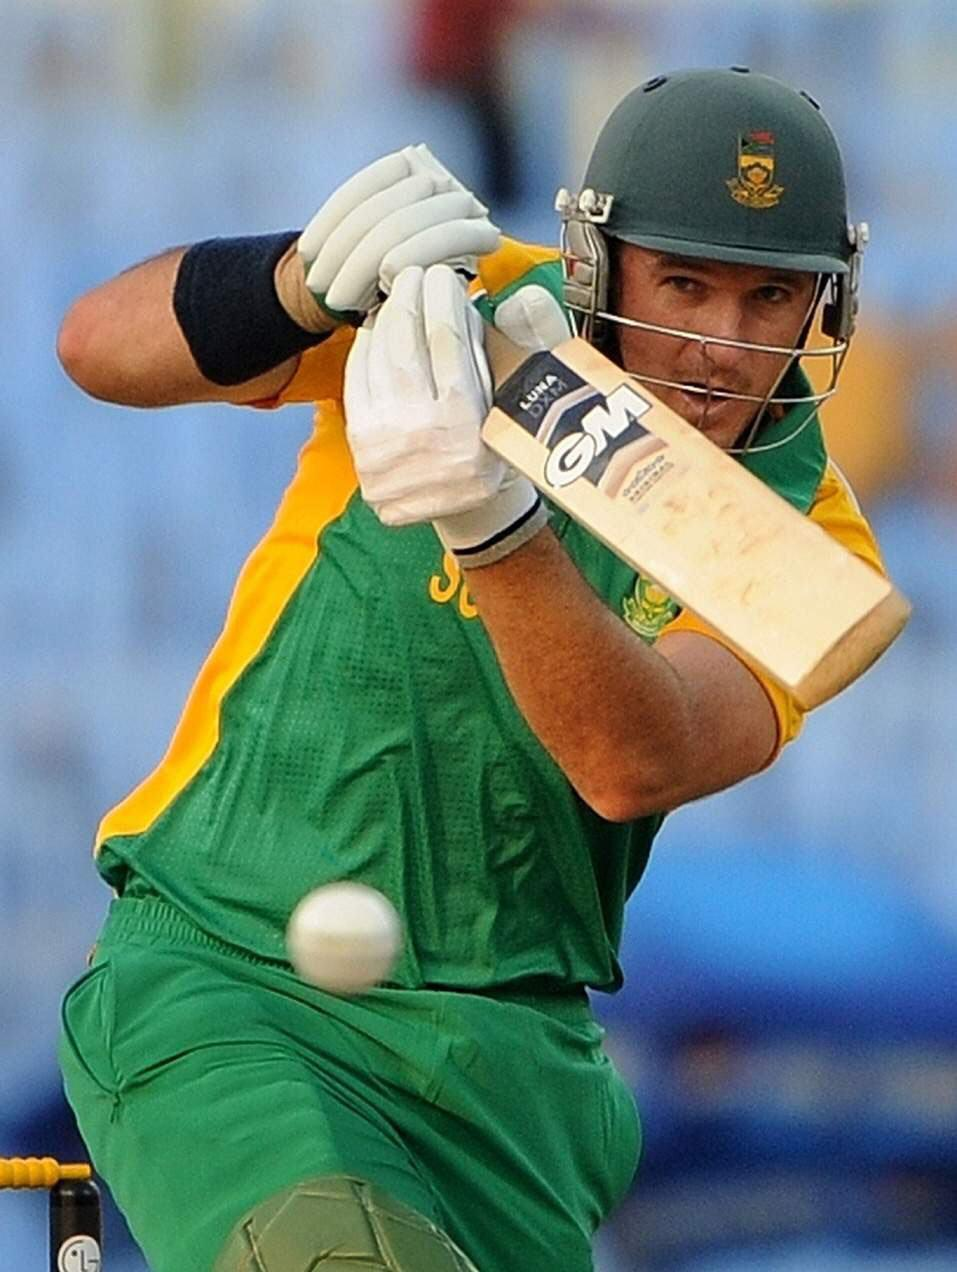 Graeme Smith Batting In Warm Up Vs Zimbabwe